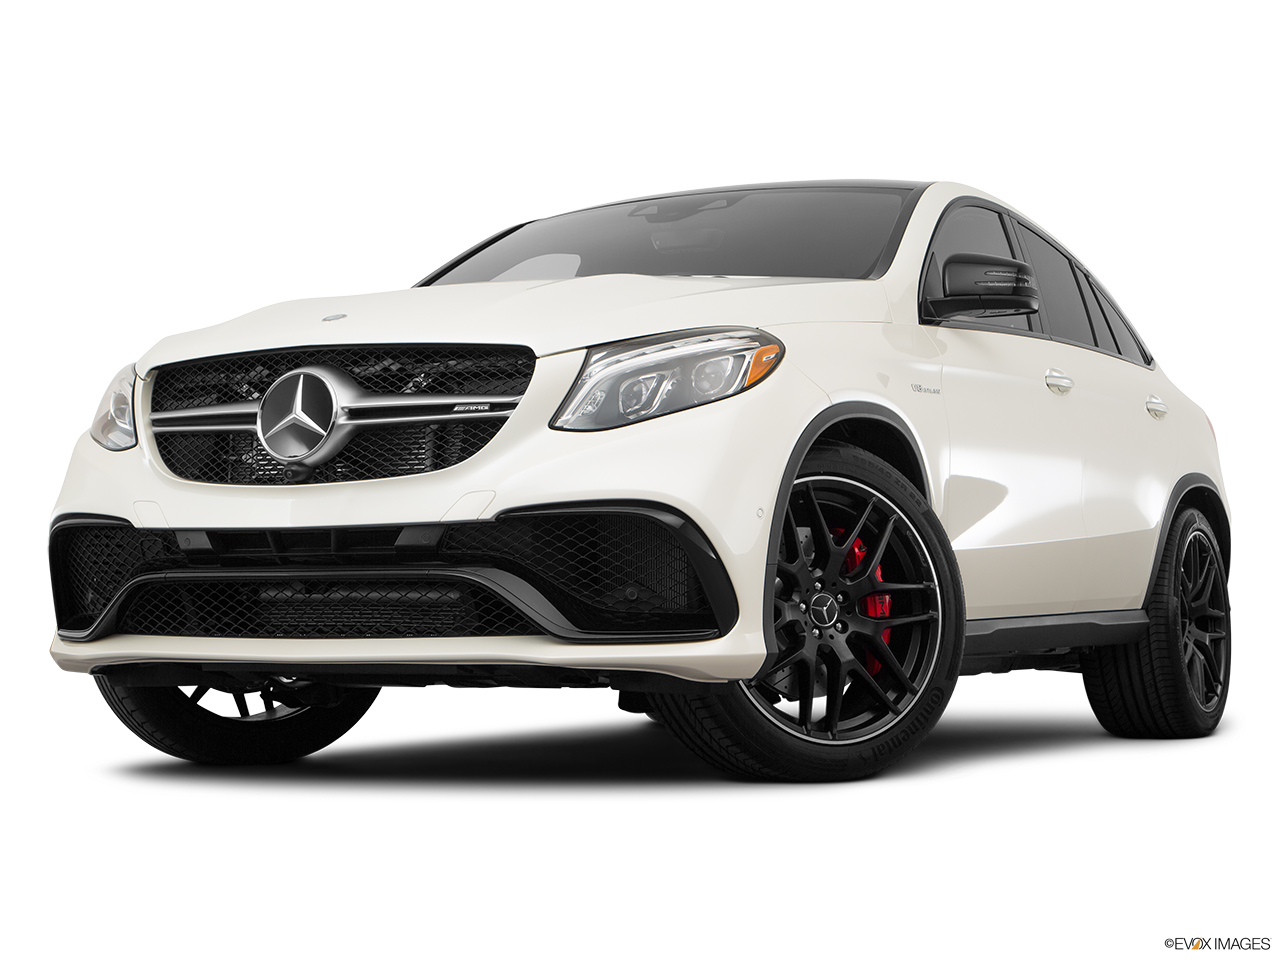 Mercedes benz gle coupe 2017 amg gle 63 s 4matic in saudi for 2017 mercedes benz amg gle 63